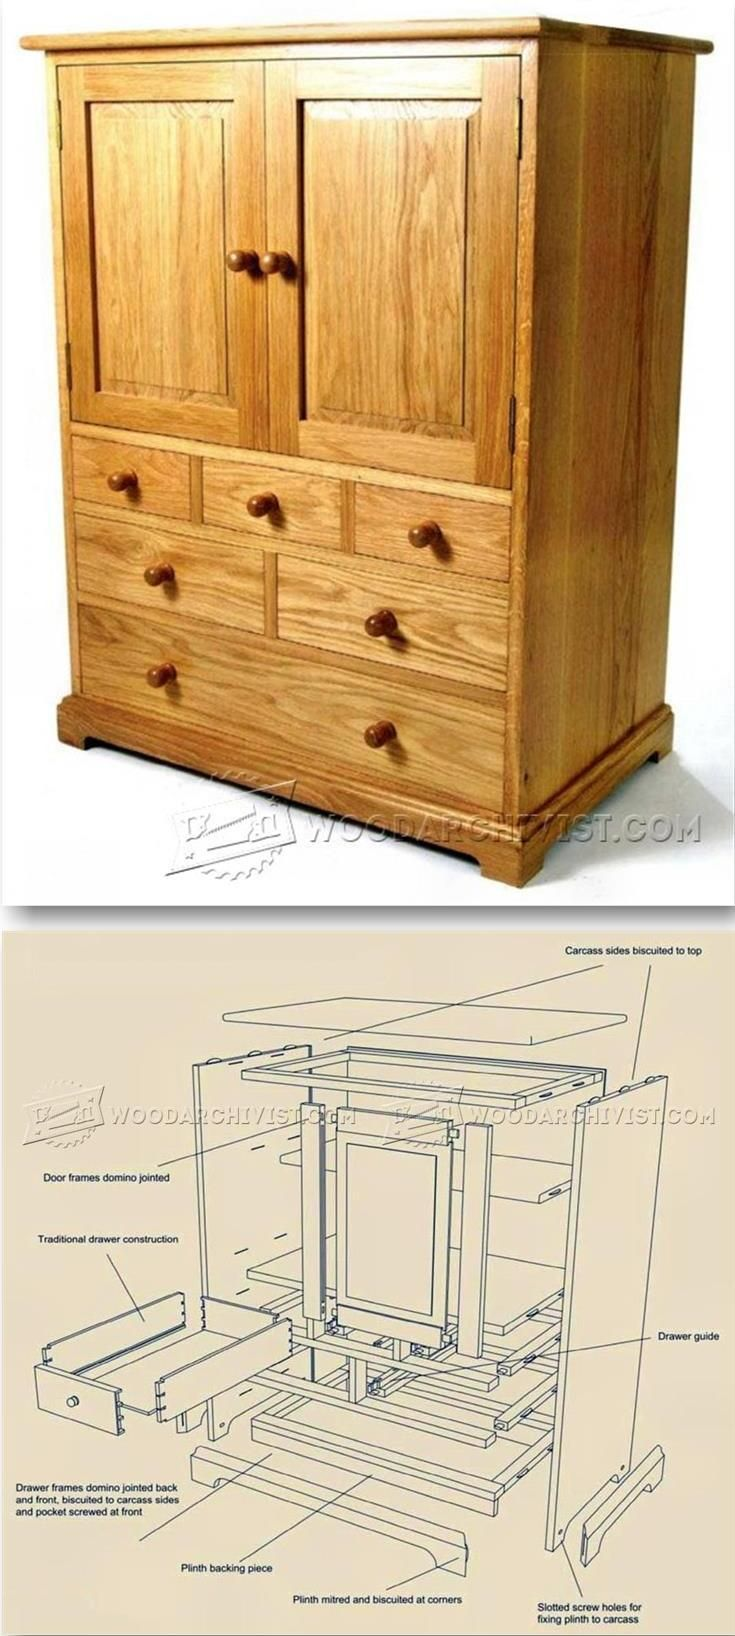 Oak tallboy plans furniture plans and projects for Woodworkingplans com